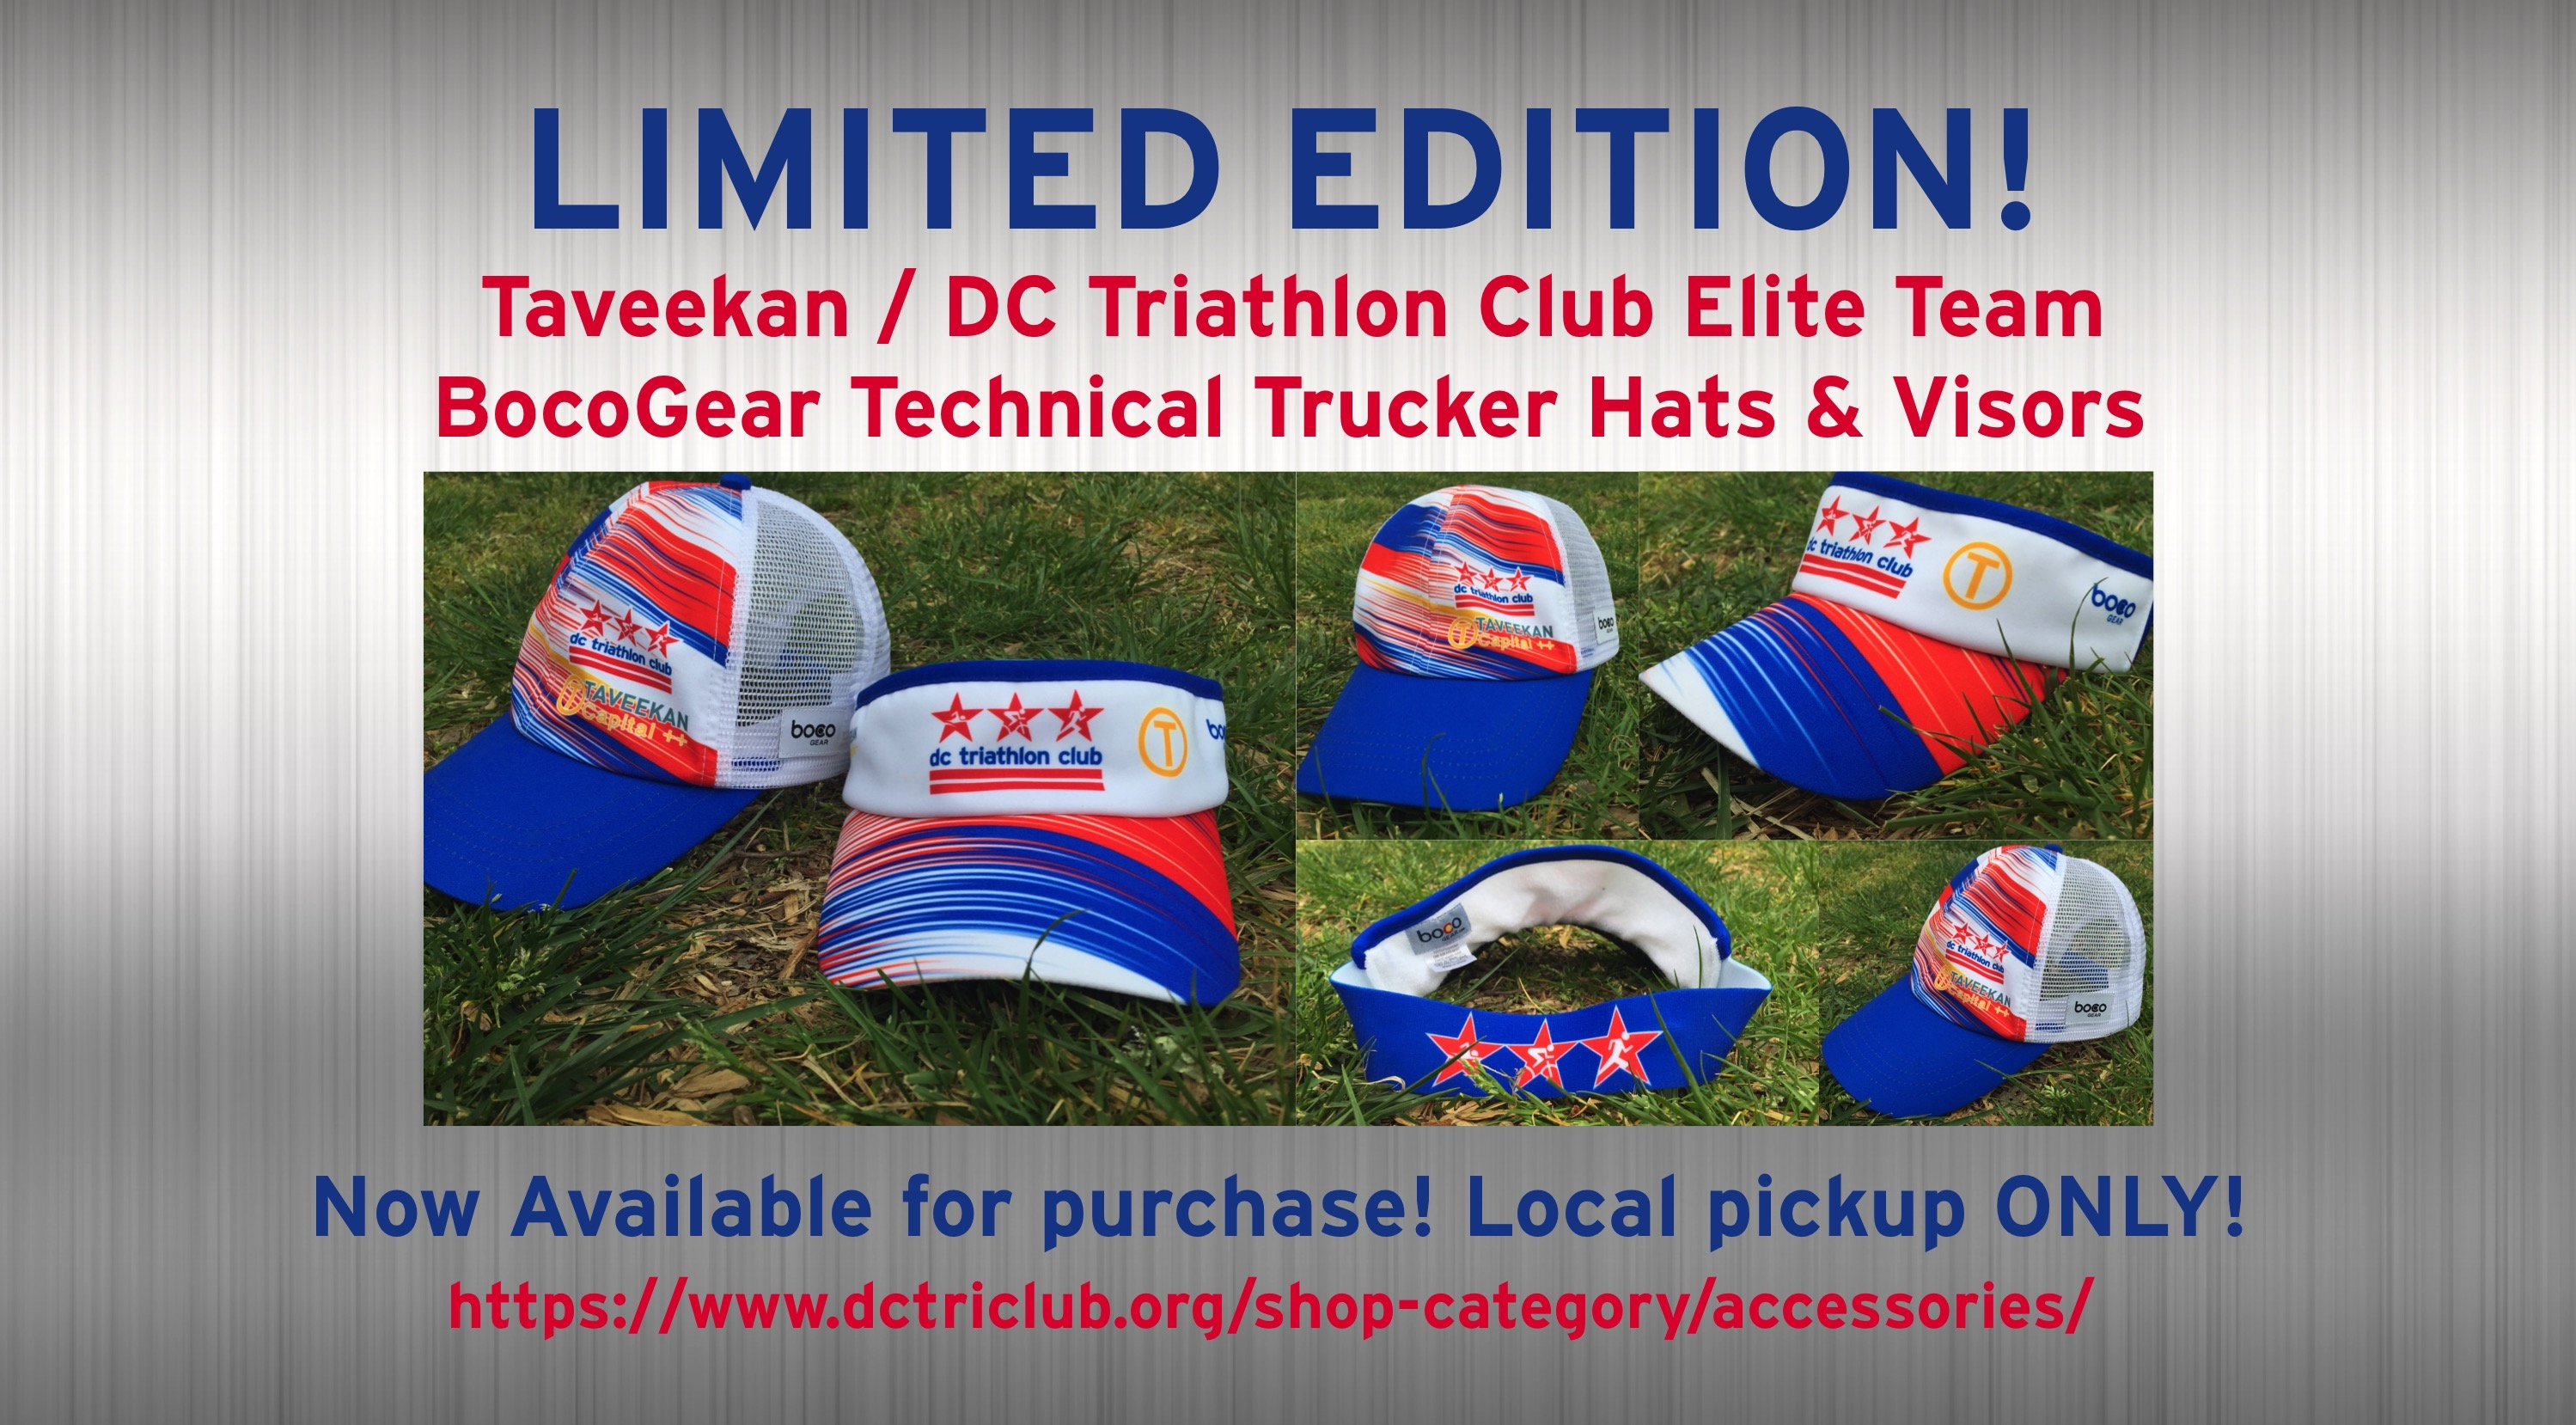 DCTri Boco Visors and Tech Trucker Hats